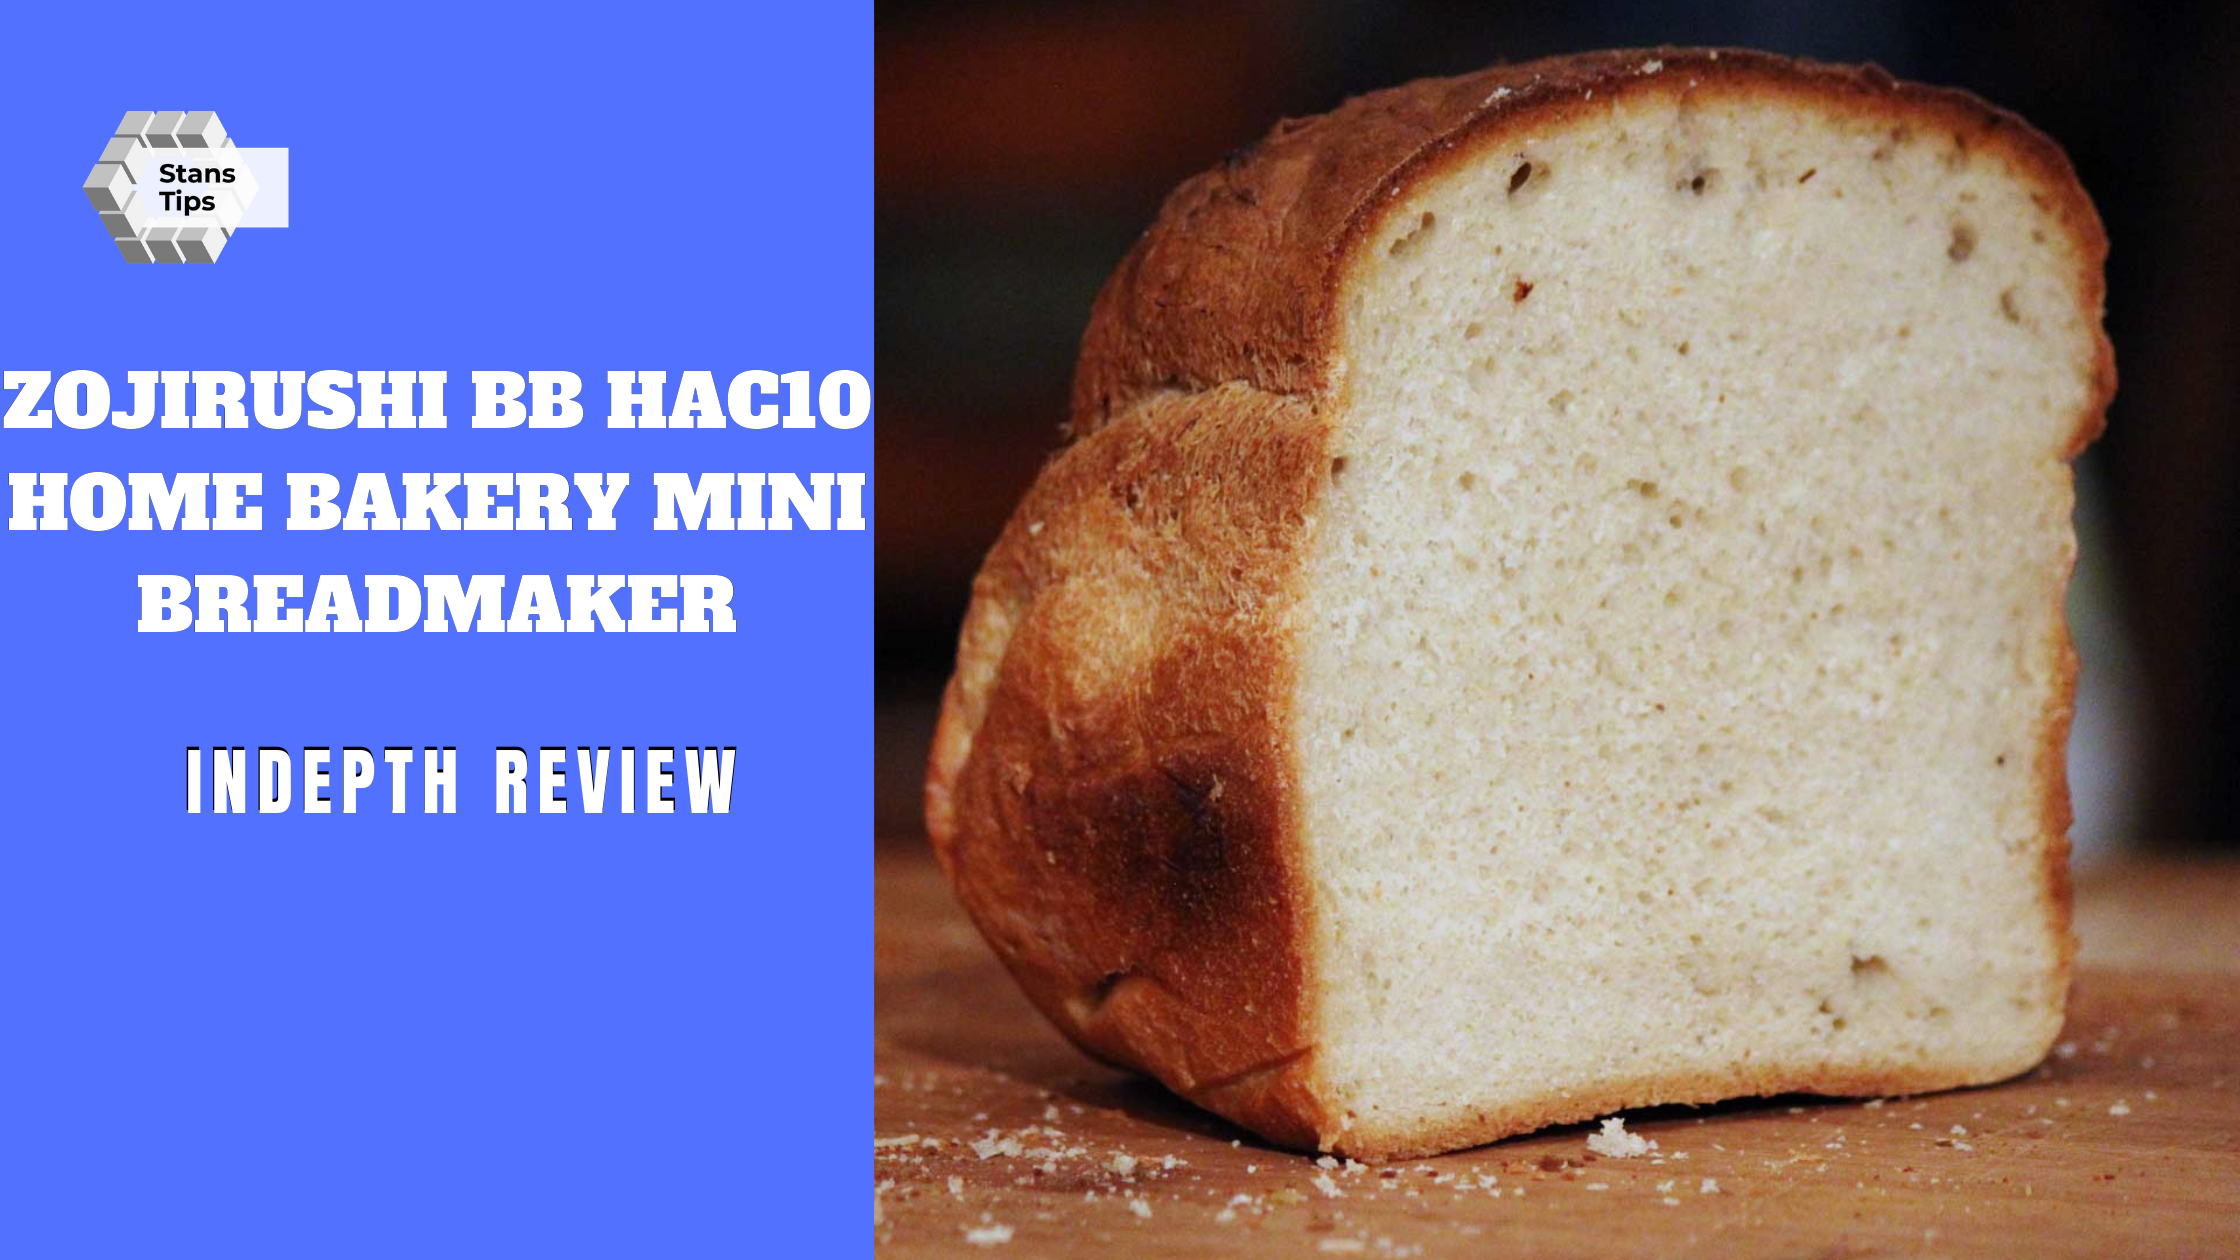 Zojirushi bb hac10 home bakery mini breadmaker review